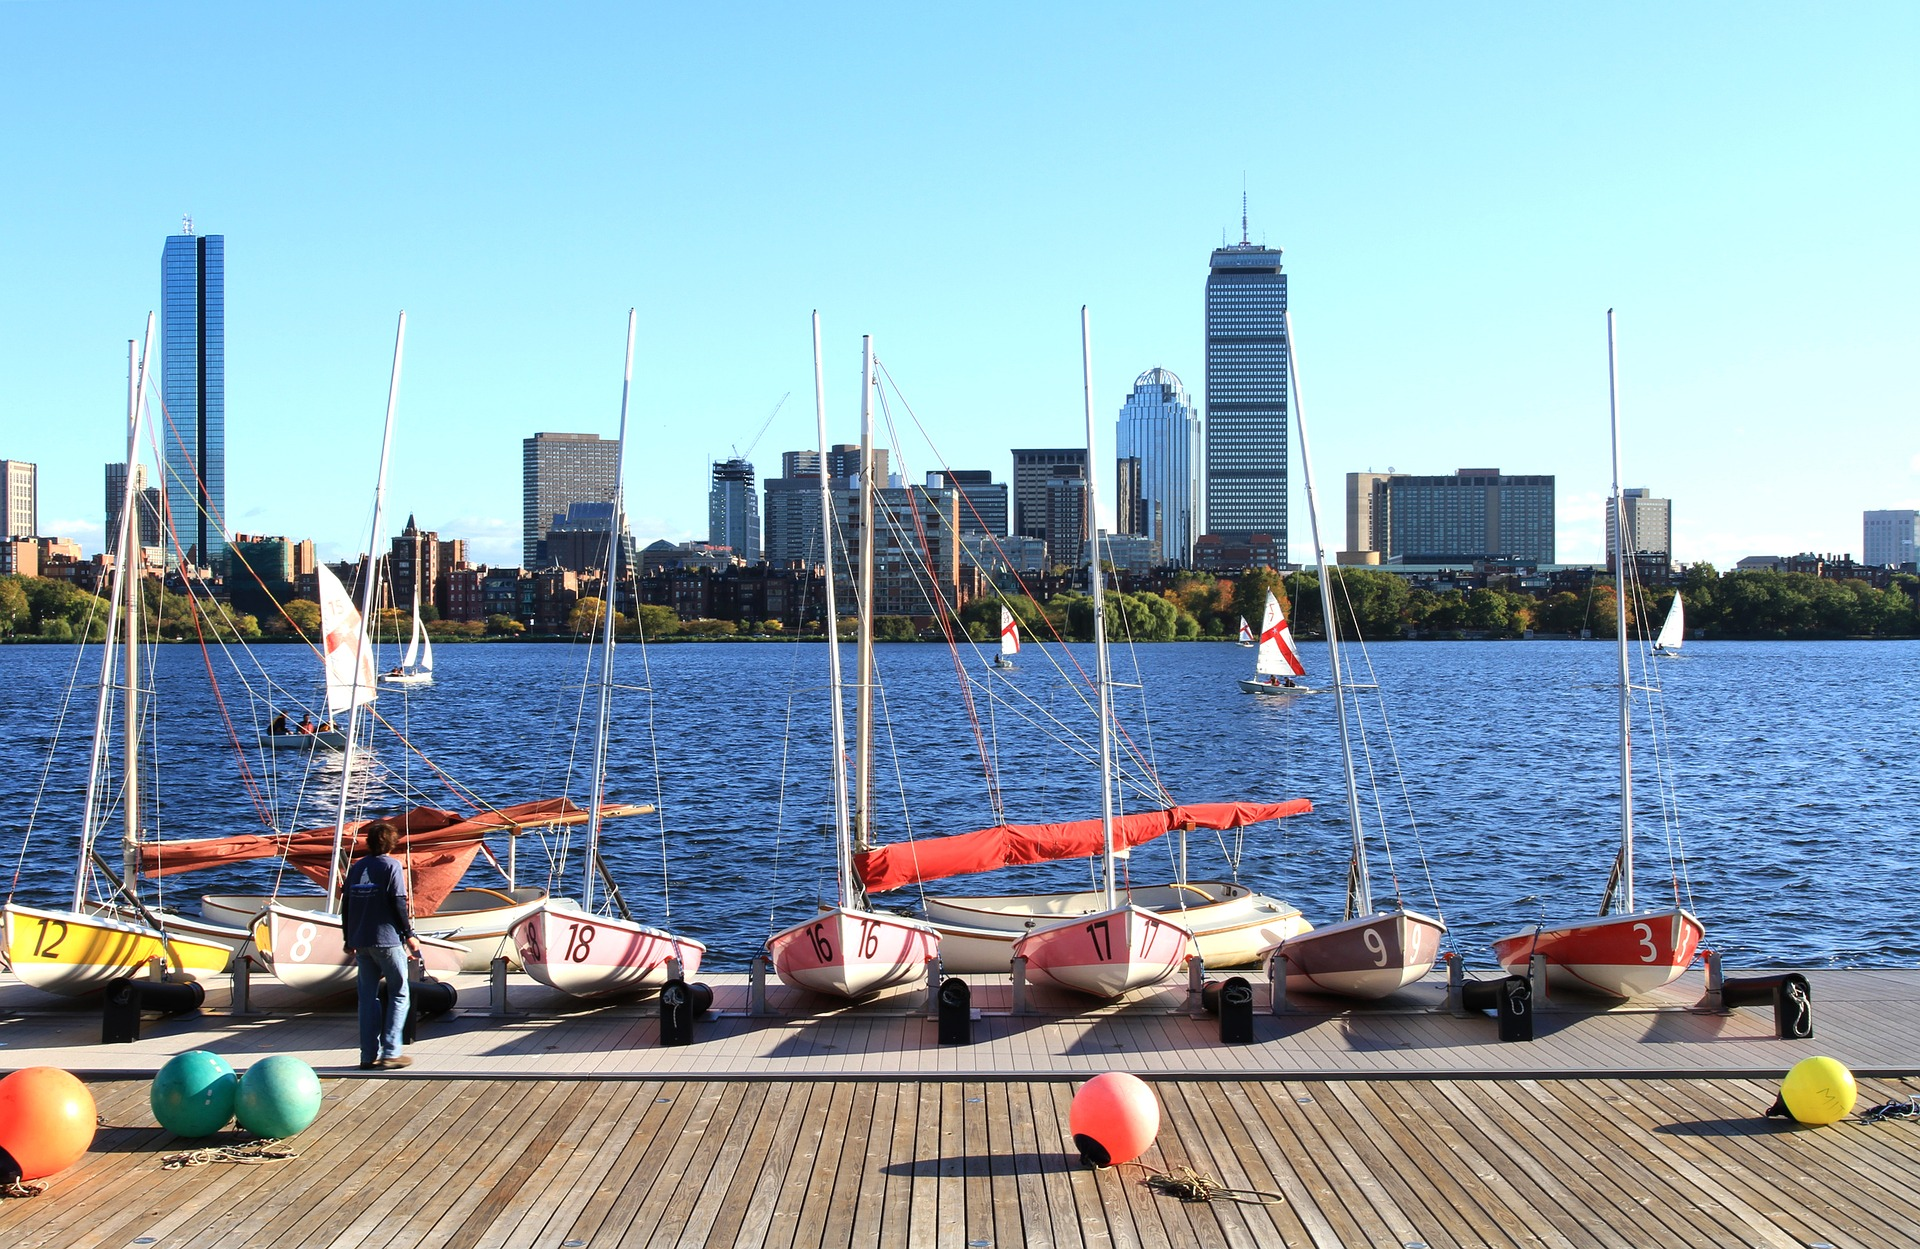 Things to do in Boston if you live there